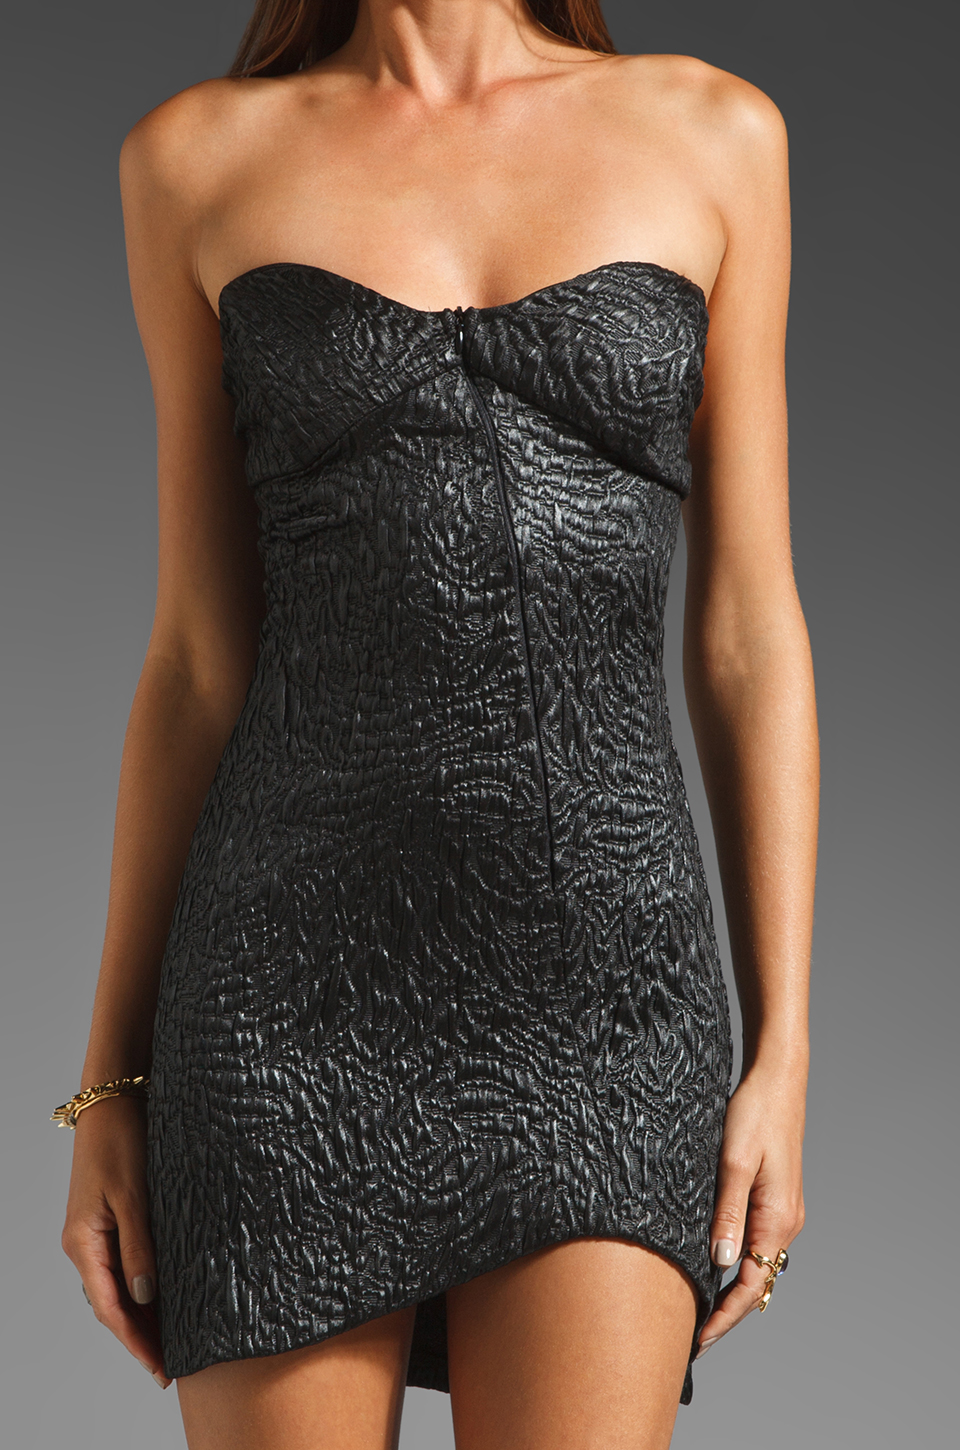 AGAIN Dixieland Textured Asymmetrical Tube Dress in Black